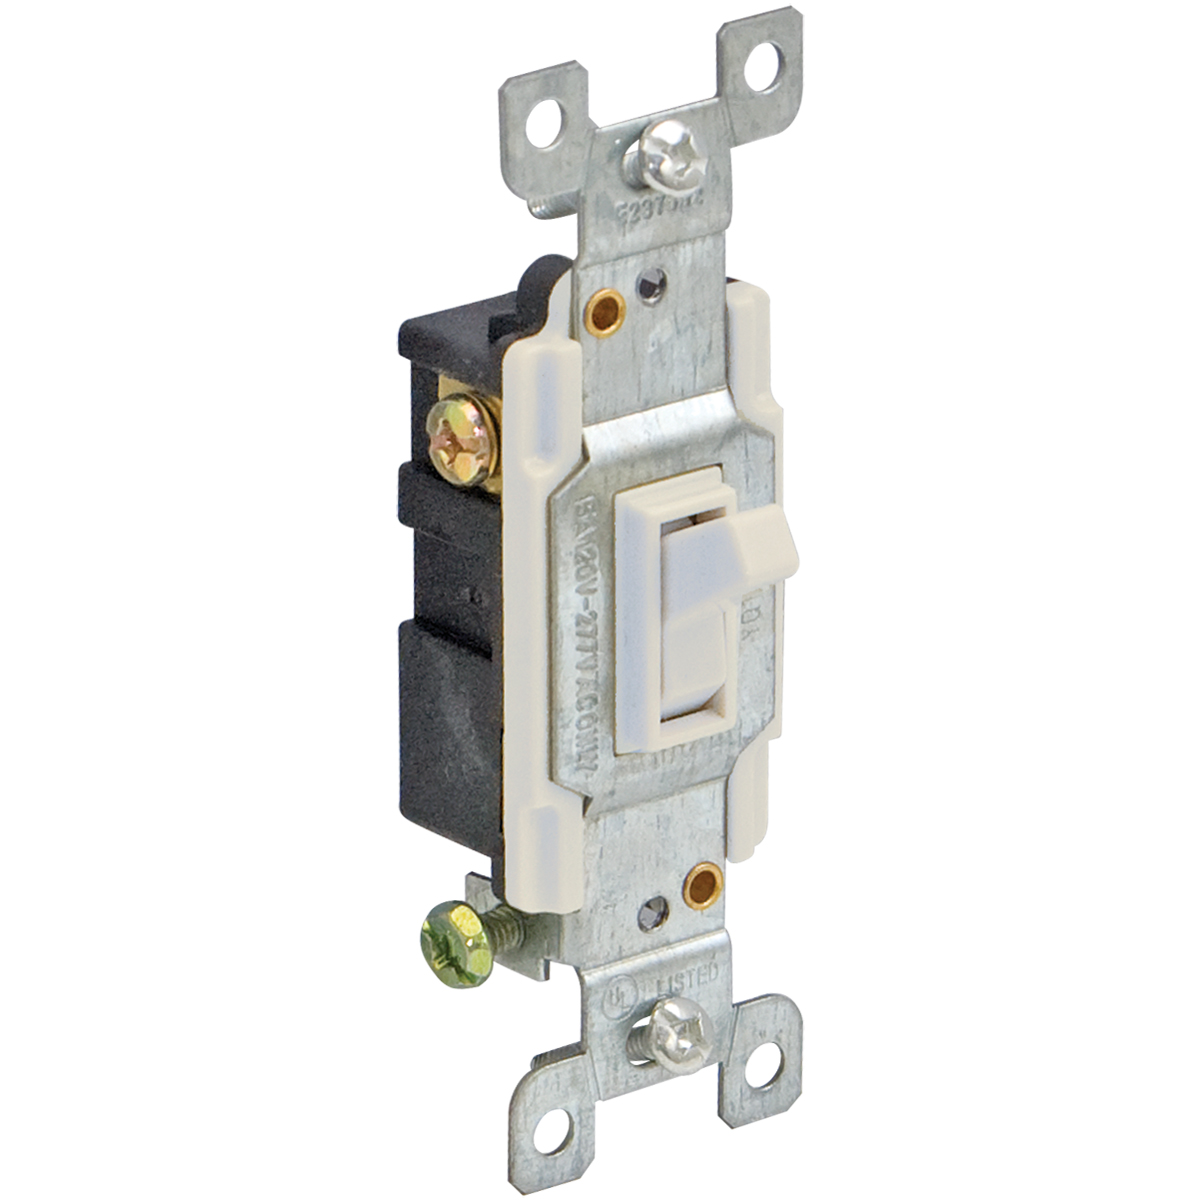 3-Way Wall Switch - White | Contractor Access